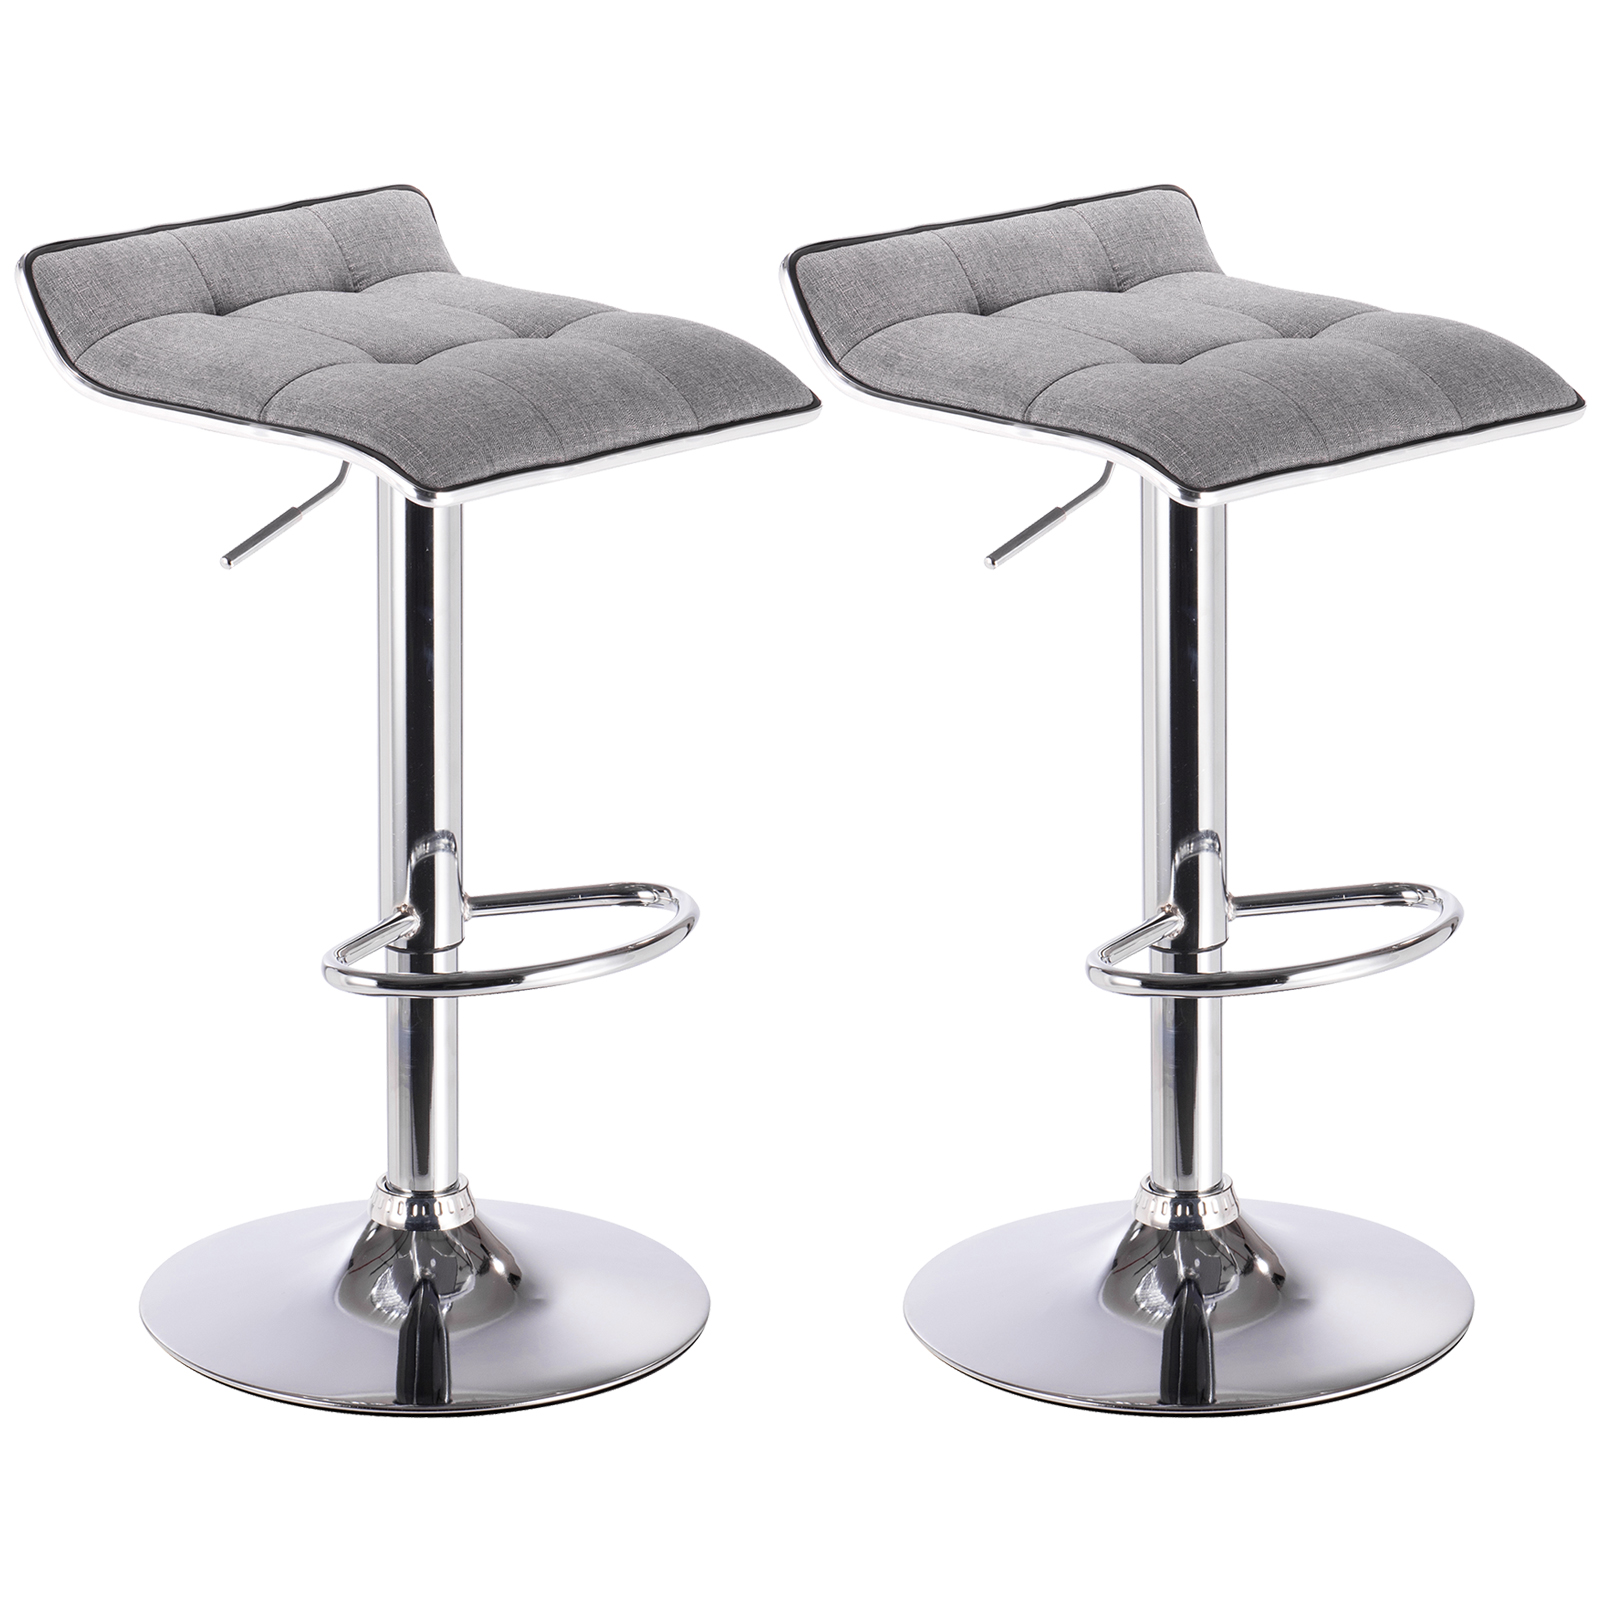 Bar stools set of 2 linen stool kitchen breakfast chair for Kitchen swivel bar stools